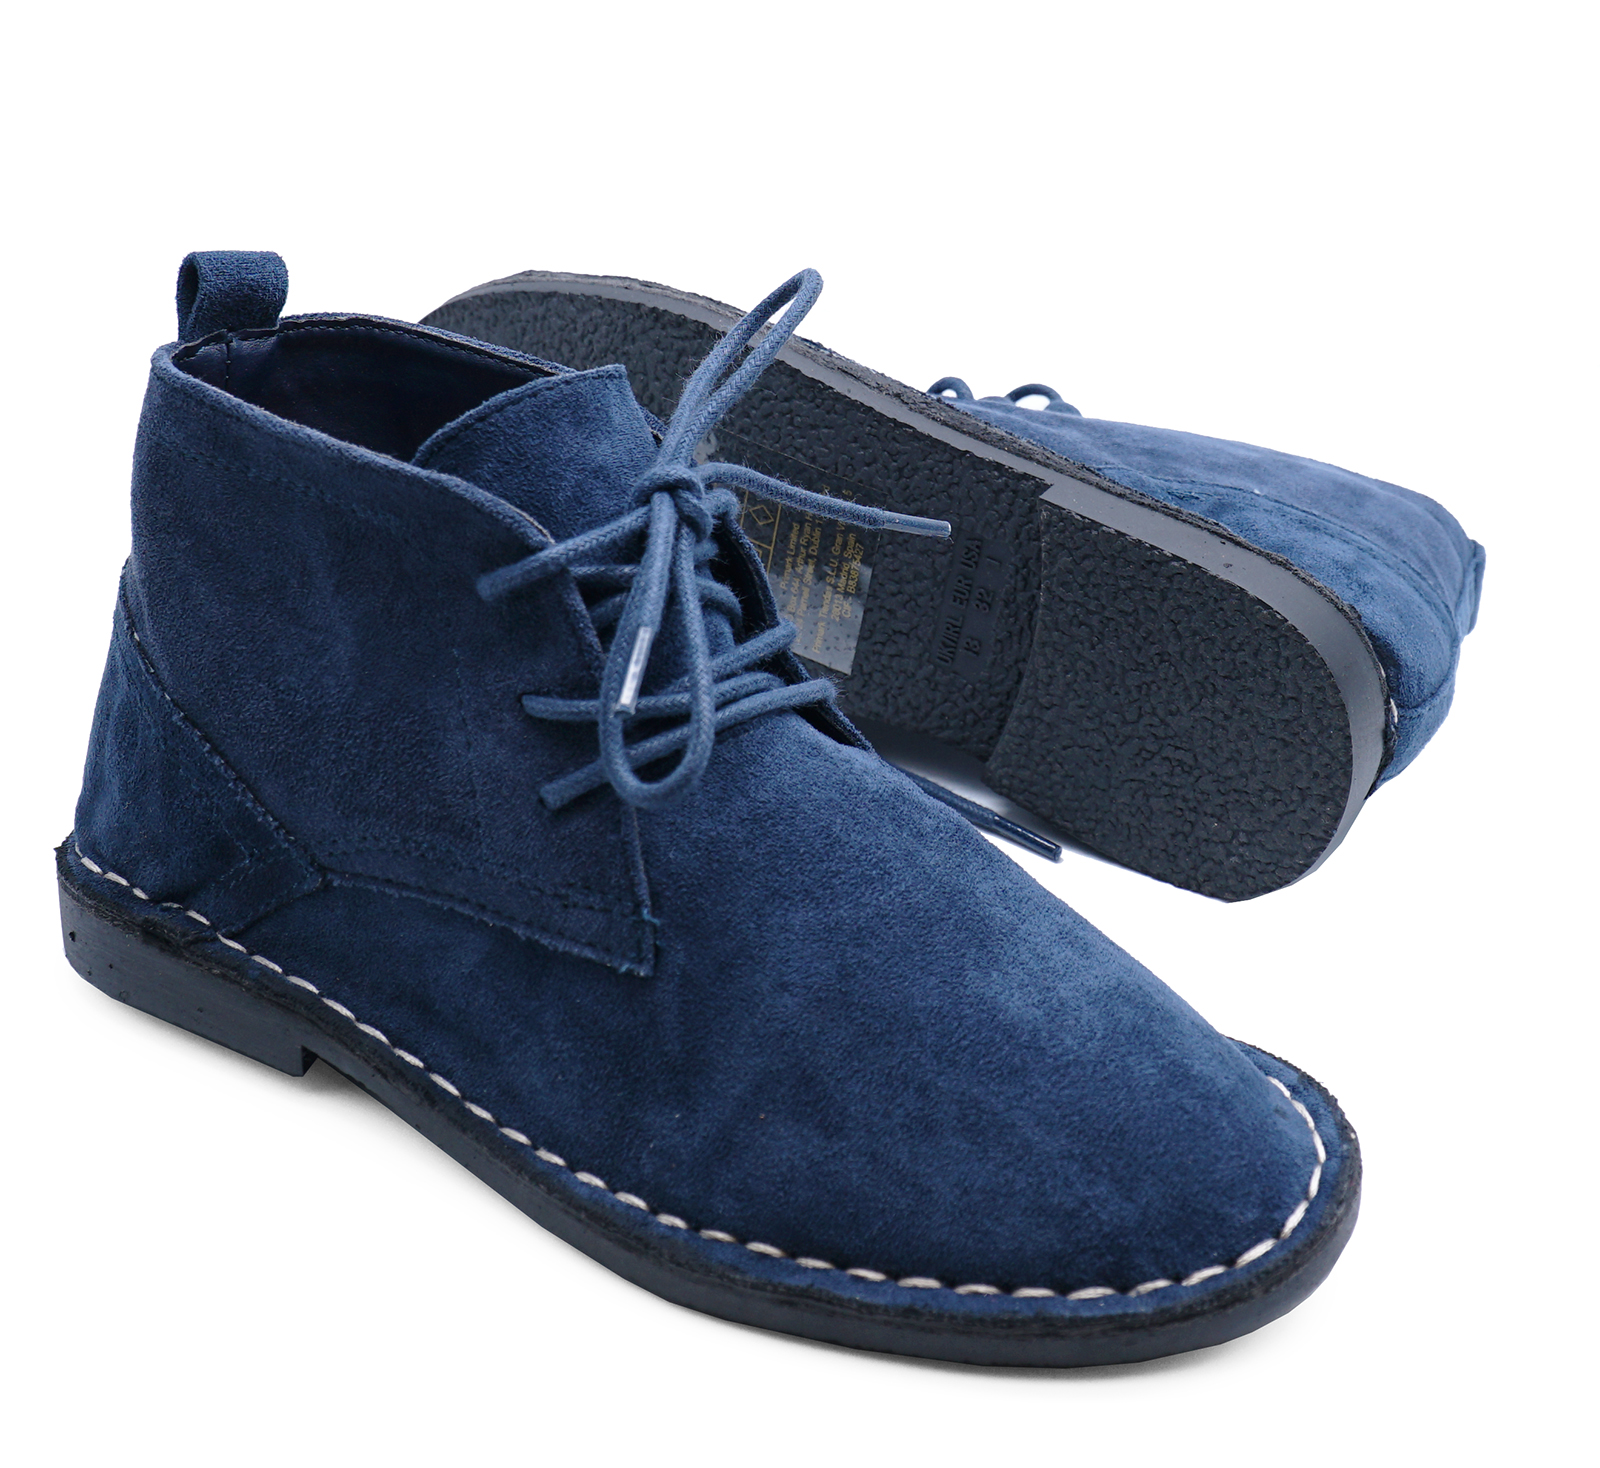 BOYS-KIDS-NAVY-DESERT-DEALER-LACE-UP-SMART-CASUAL-ANKLE-BOOTS-SHOES-SIZES-6-6 thumbnail 6